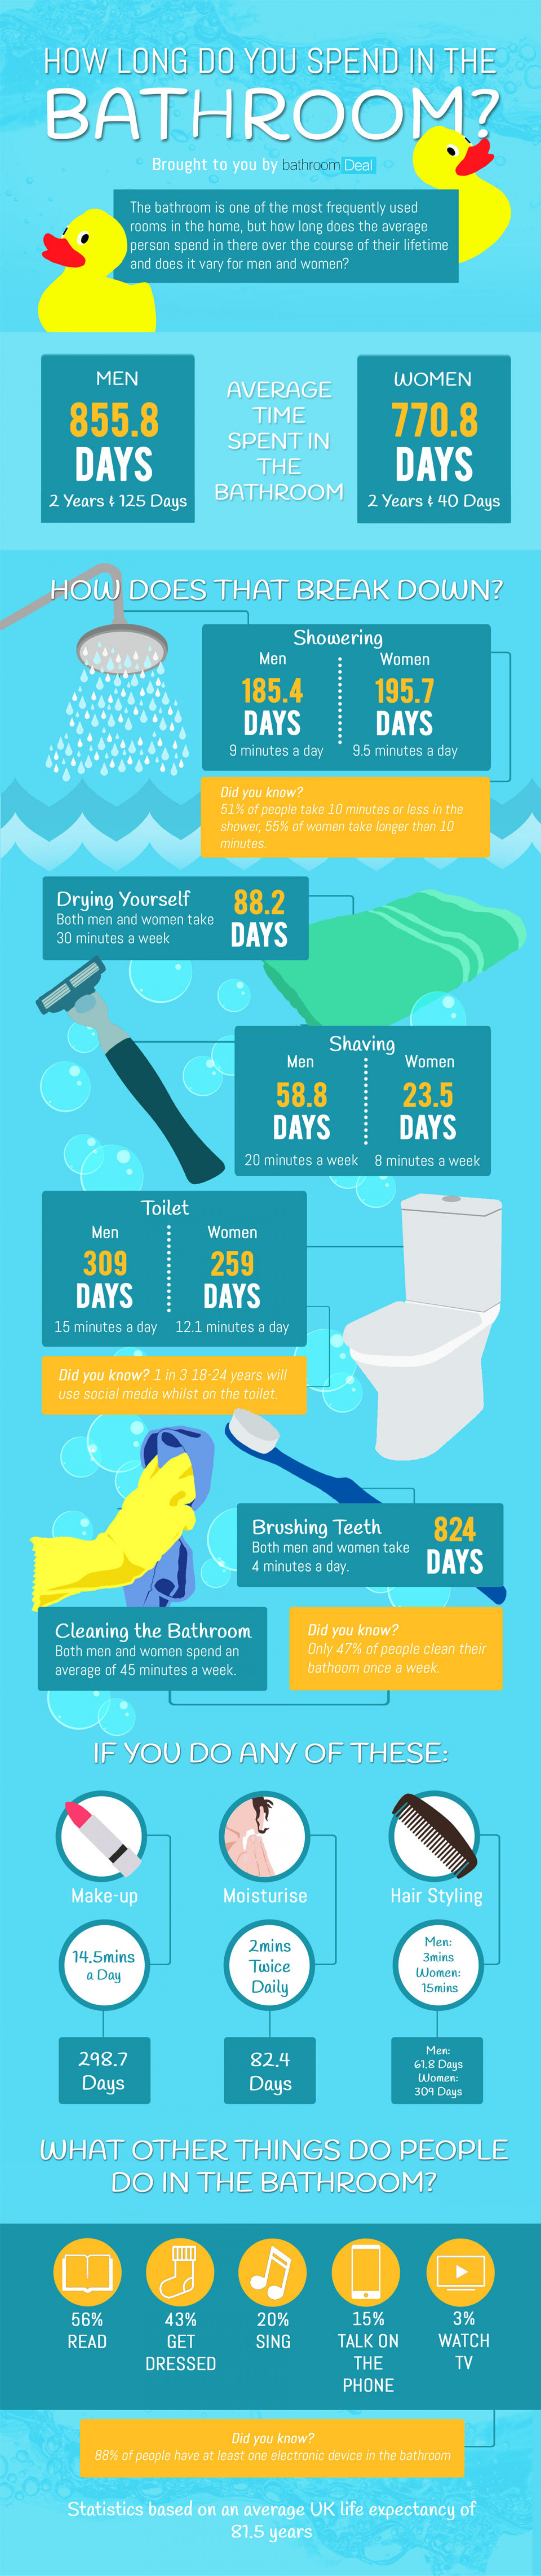 How Long Do You Spend In The Bathroom? Infographic